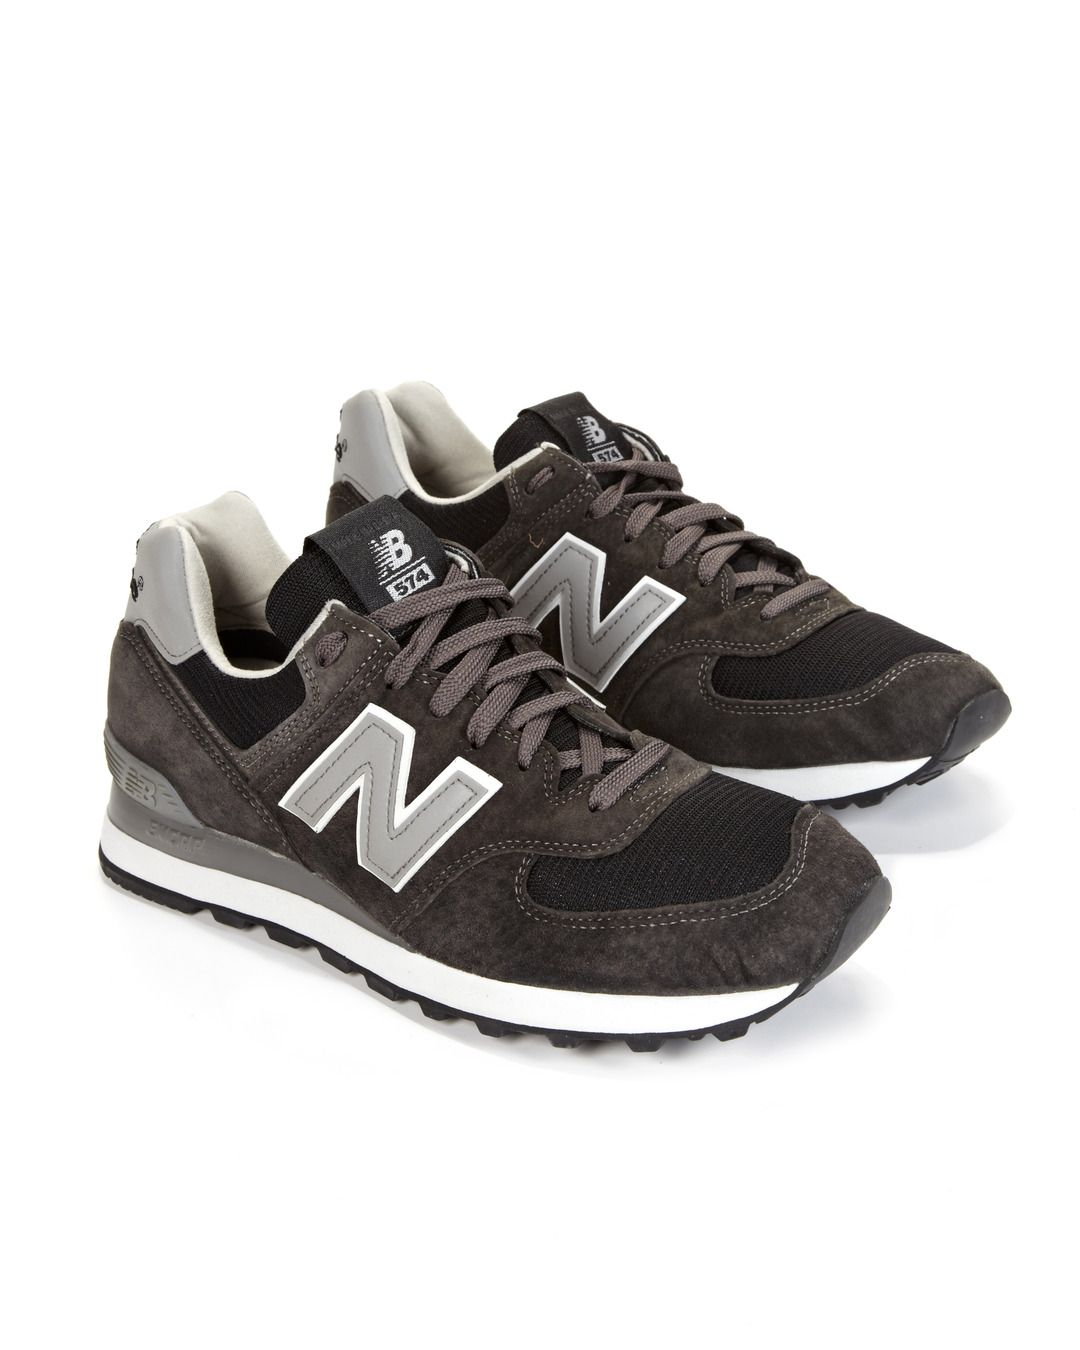 NEW BALANCE Made in the USA M574 Sneaker